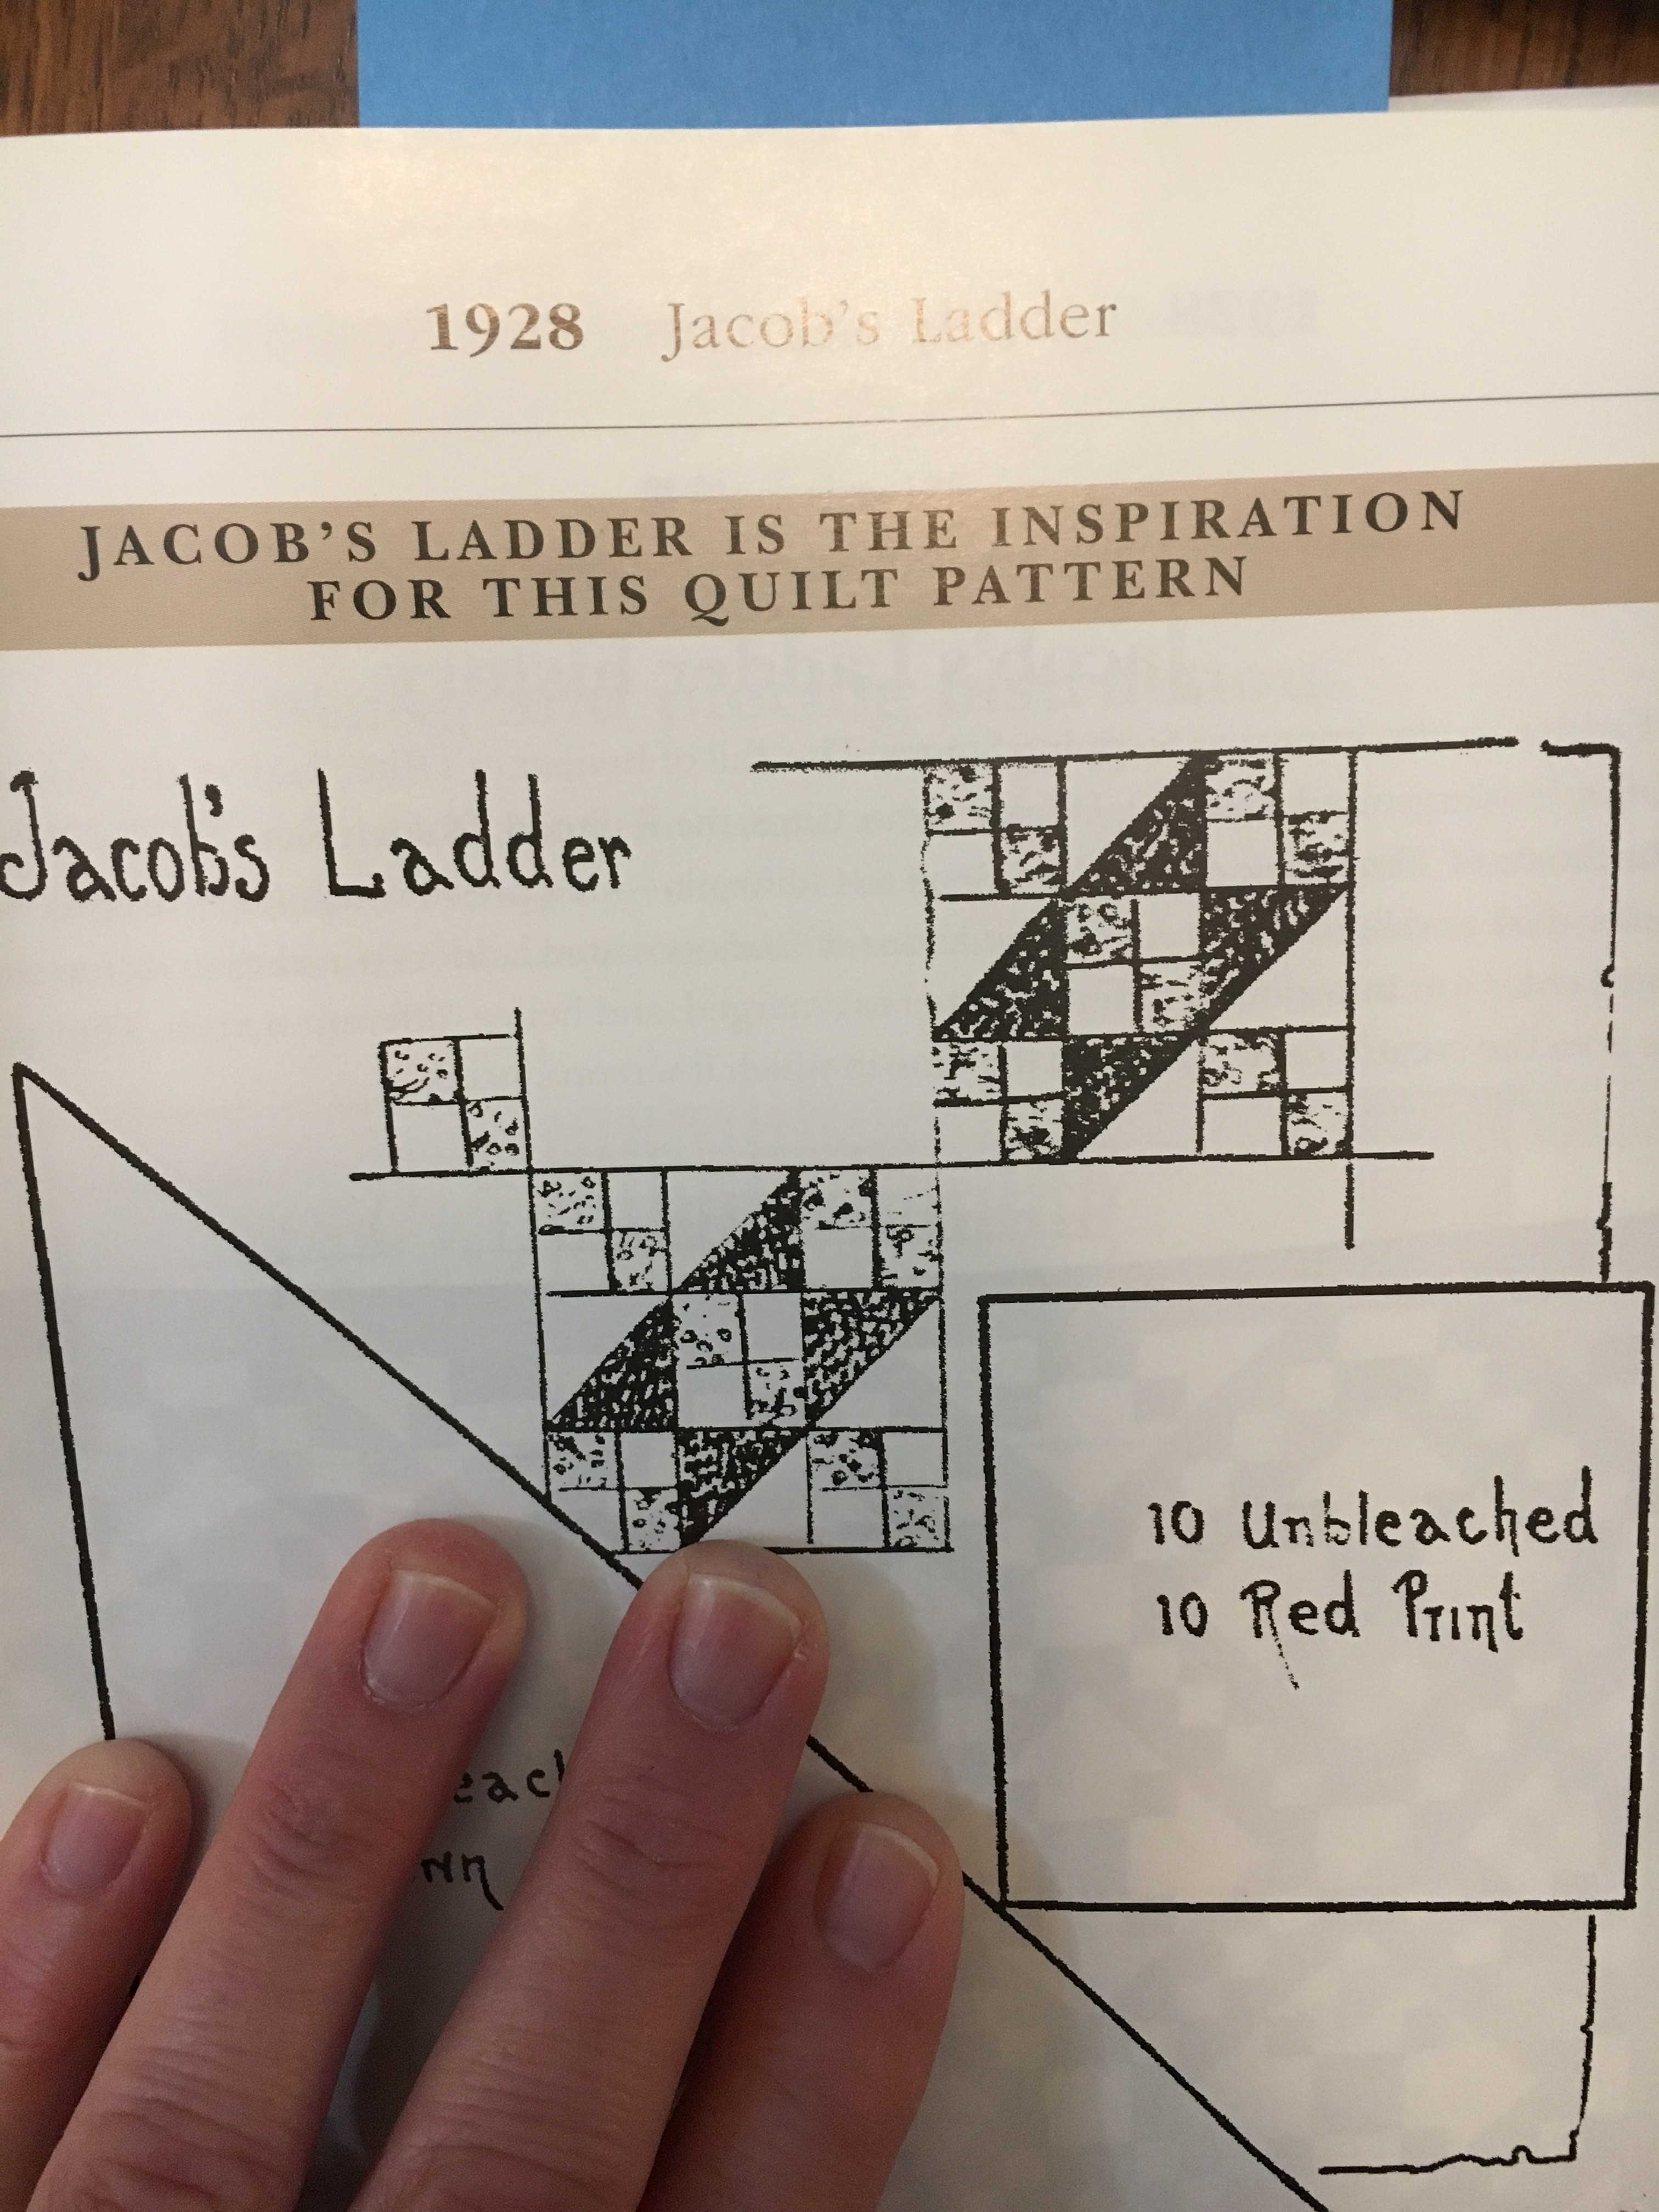 1928 Kansas City Star Version of Jacob's Ladder in Star Quilts.